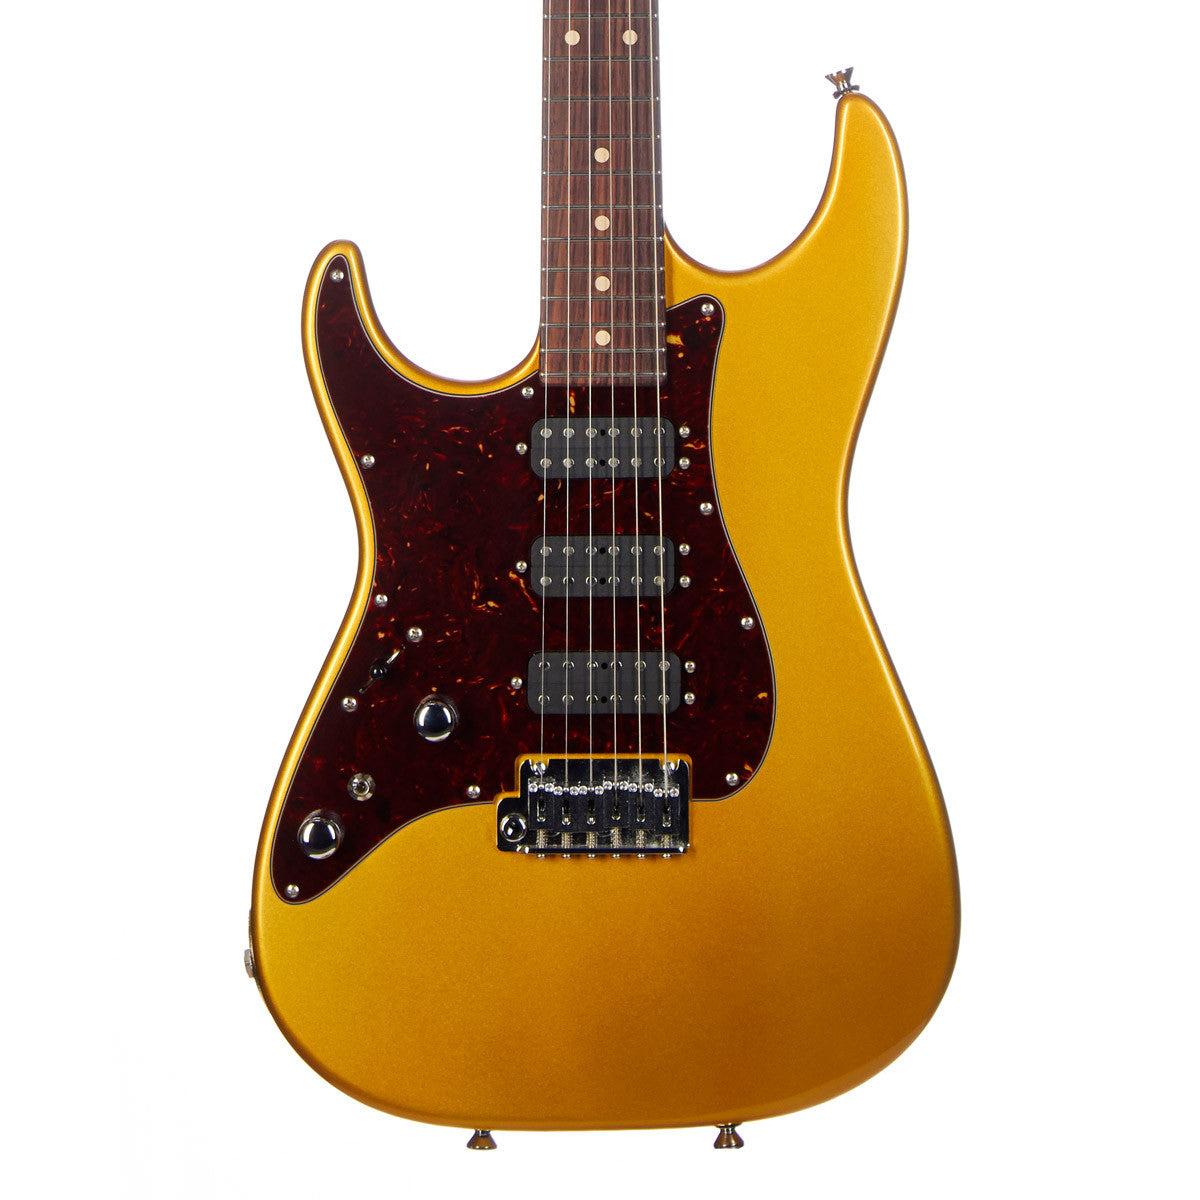 tom anderson strat wiring diagram wiring library guitar on ground tom anderson wiring product wiring diagrams \\u2022 pickup wiring ibanez evolution tom anderson pickup wiring